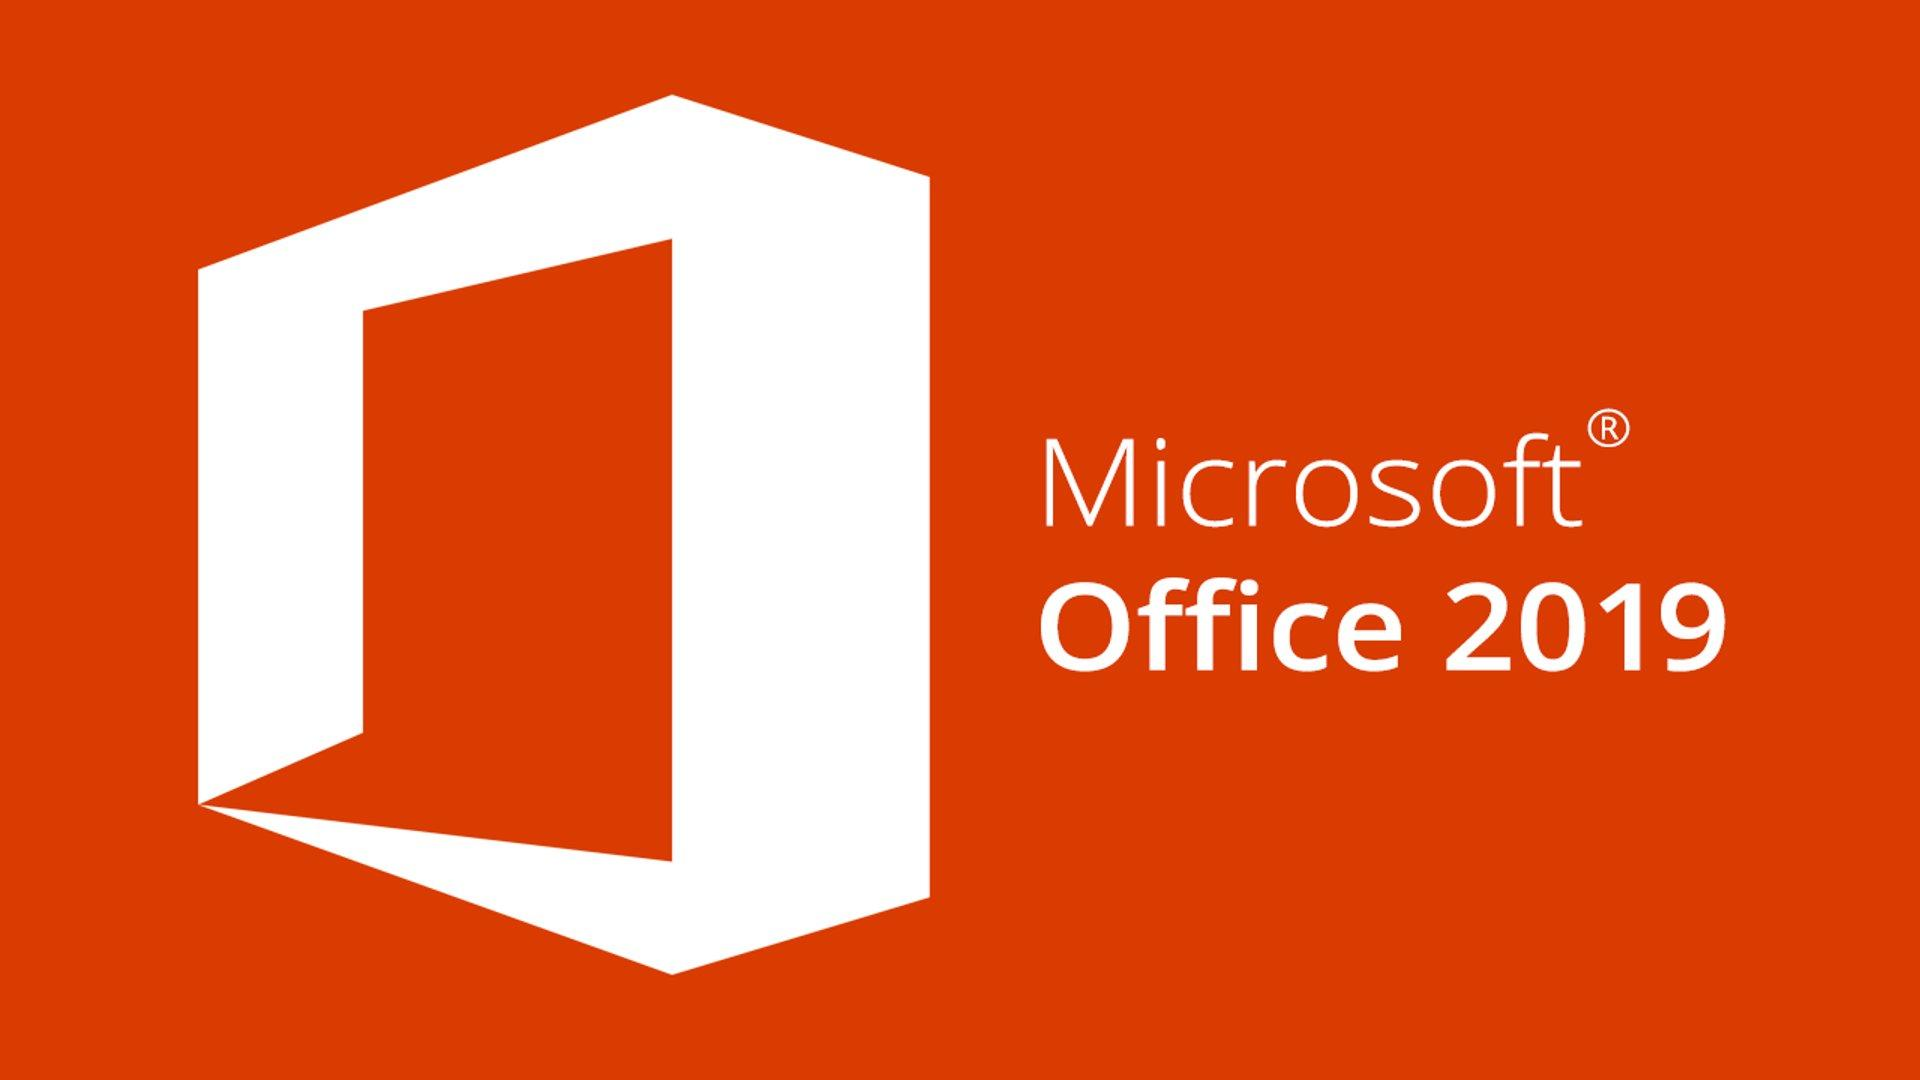 Microsoft Office Windows 7 How To Install Office 2019 On Windows 7 8 8 1 Software Chat